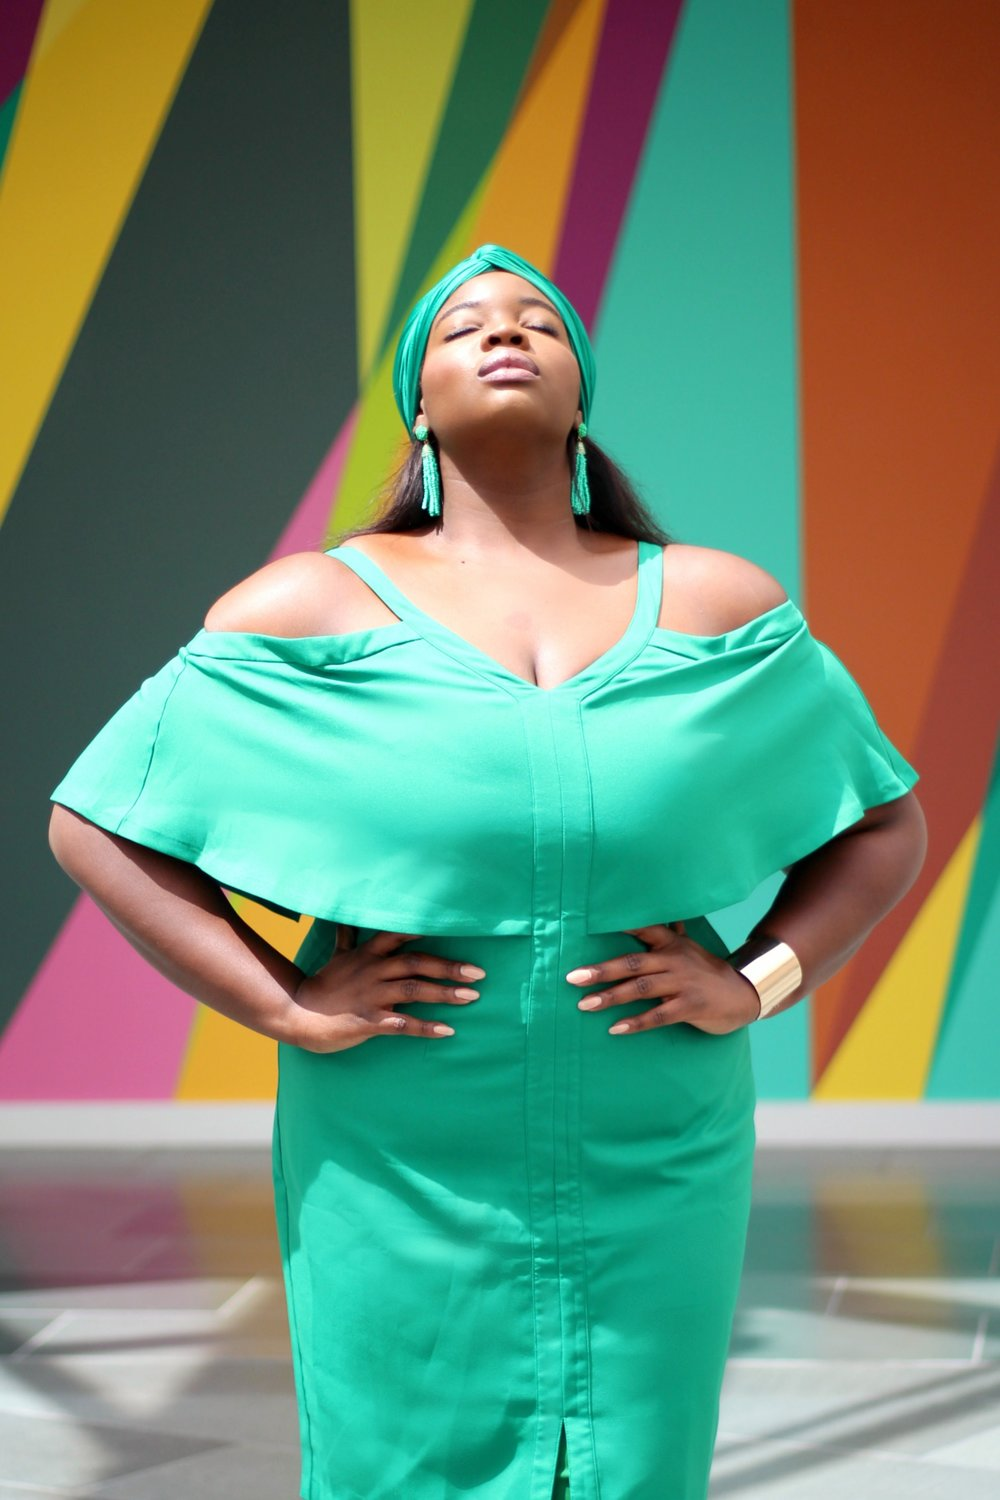 1. STAND OUT - Be that pop of color in a sea of grey and black this fall. Break your routine by wearing a bright color, like this Emerald green ensemble from Eloquii. If green is not your color, stand out from the crowd with other striking hues like yellow, red, or even a hot pink shade. Try it at least once, and if you like it...try it again!